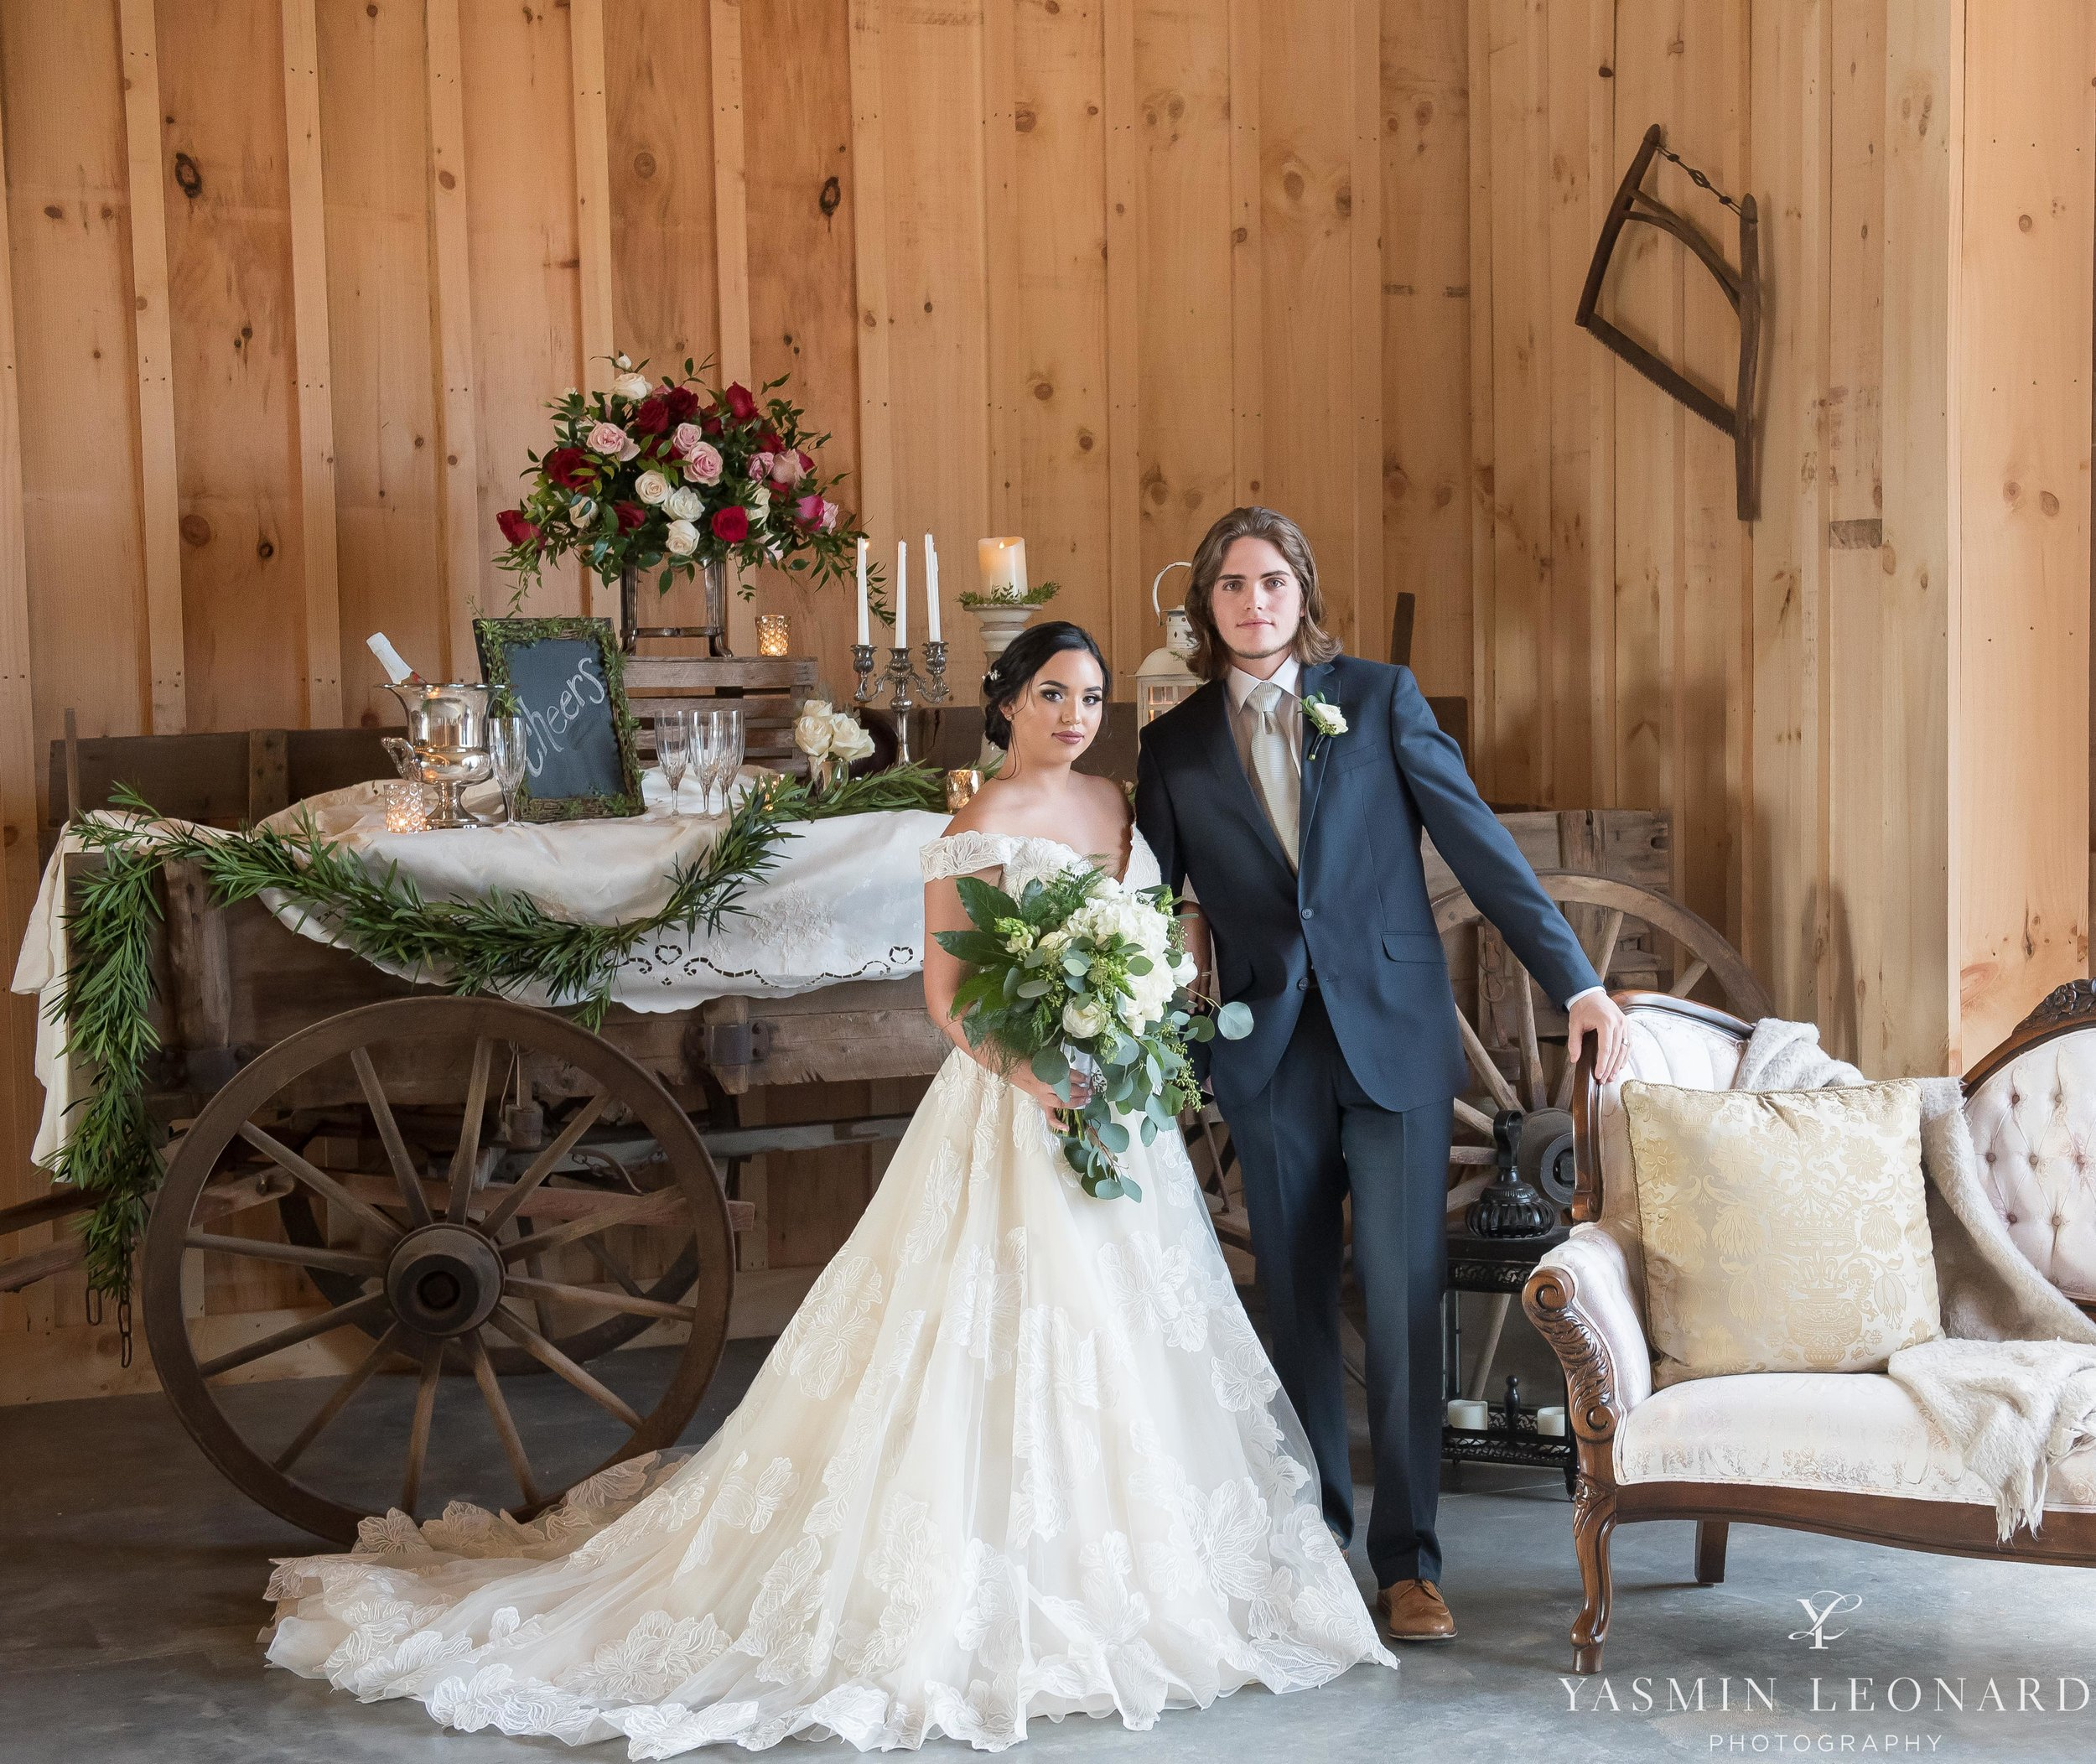 Old Homeplace Vineyard - Grits and Glitter - Dashing Dames Bridal Boutique - Just Priceless - Yasmin Leonard Photography - High Point Weddings - NC Weddings - NC Wedding Venues - High Point Jewelers - NC Wines - NC Vineyards - Cupcake Cuties-49.jpg